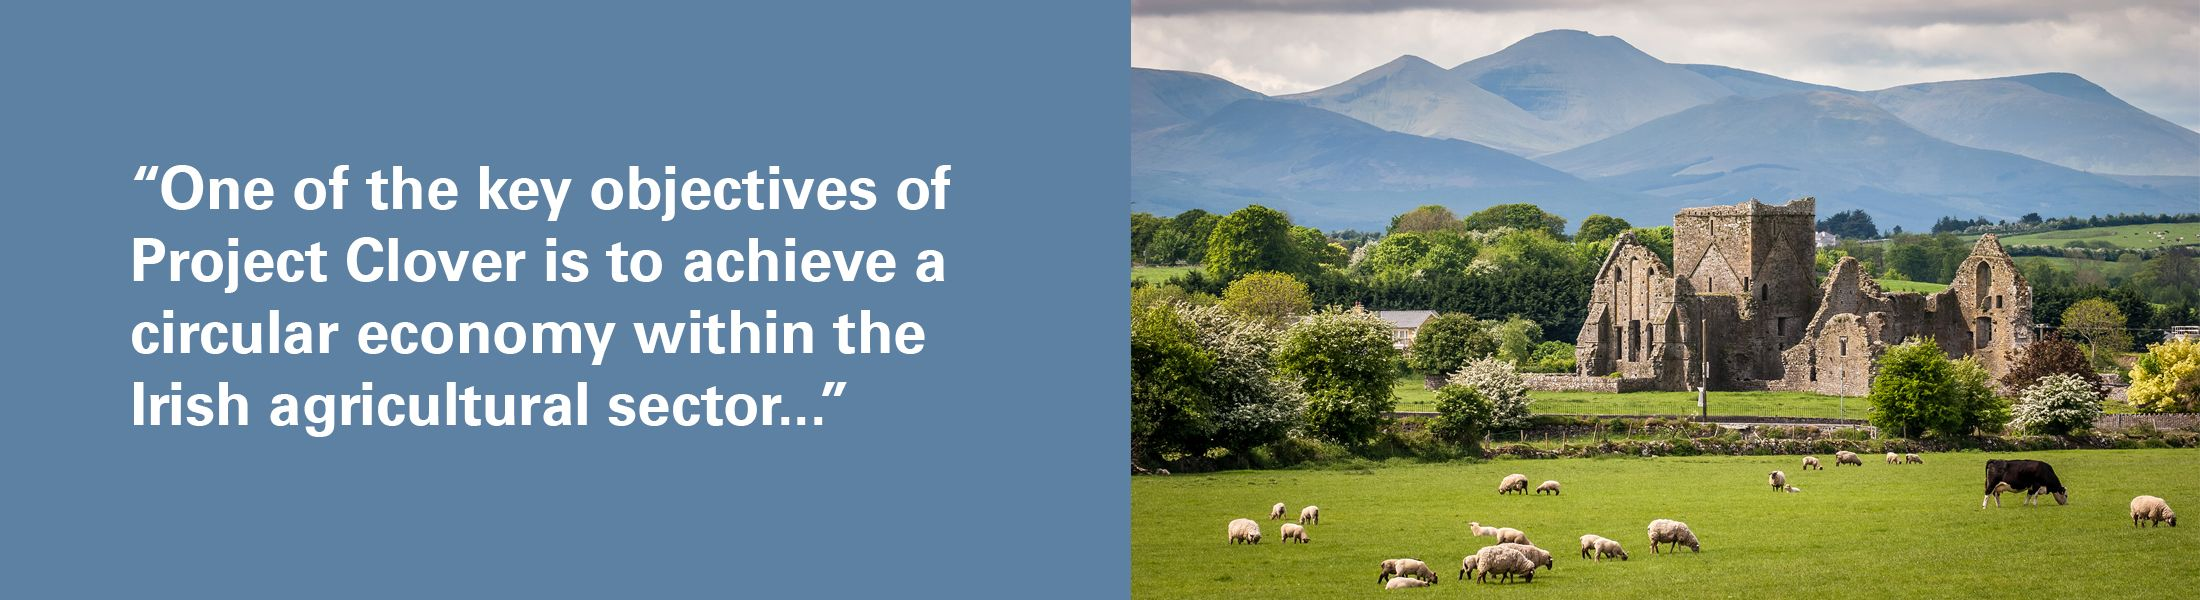 "Sheep grazing in front of ruins and mountains with quote overlaid, ""One of the key objectives of Project Clover is to achieve a circular economy within the Irish agricultural sector"""